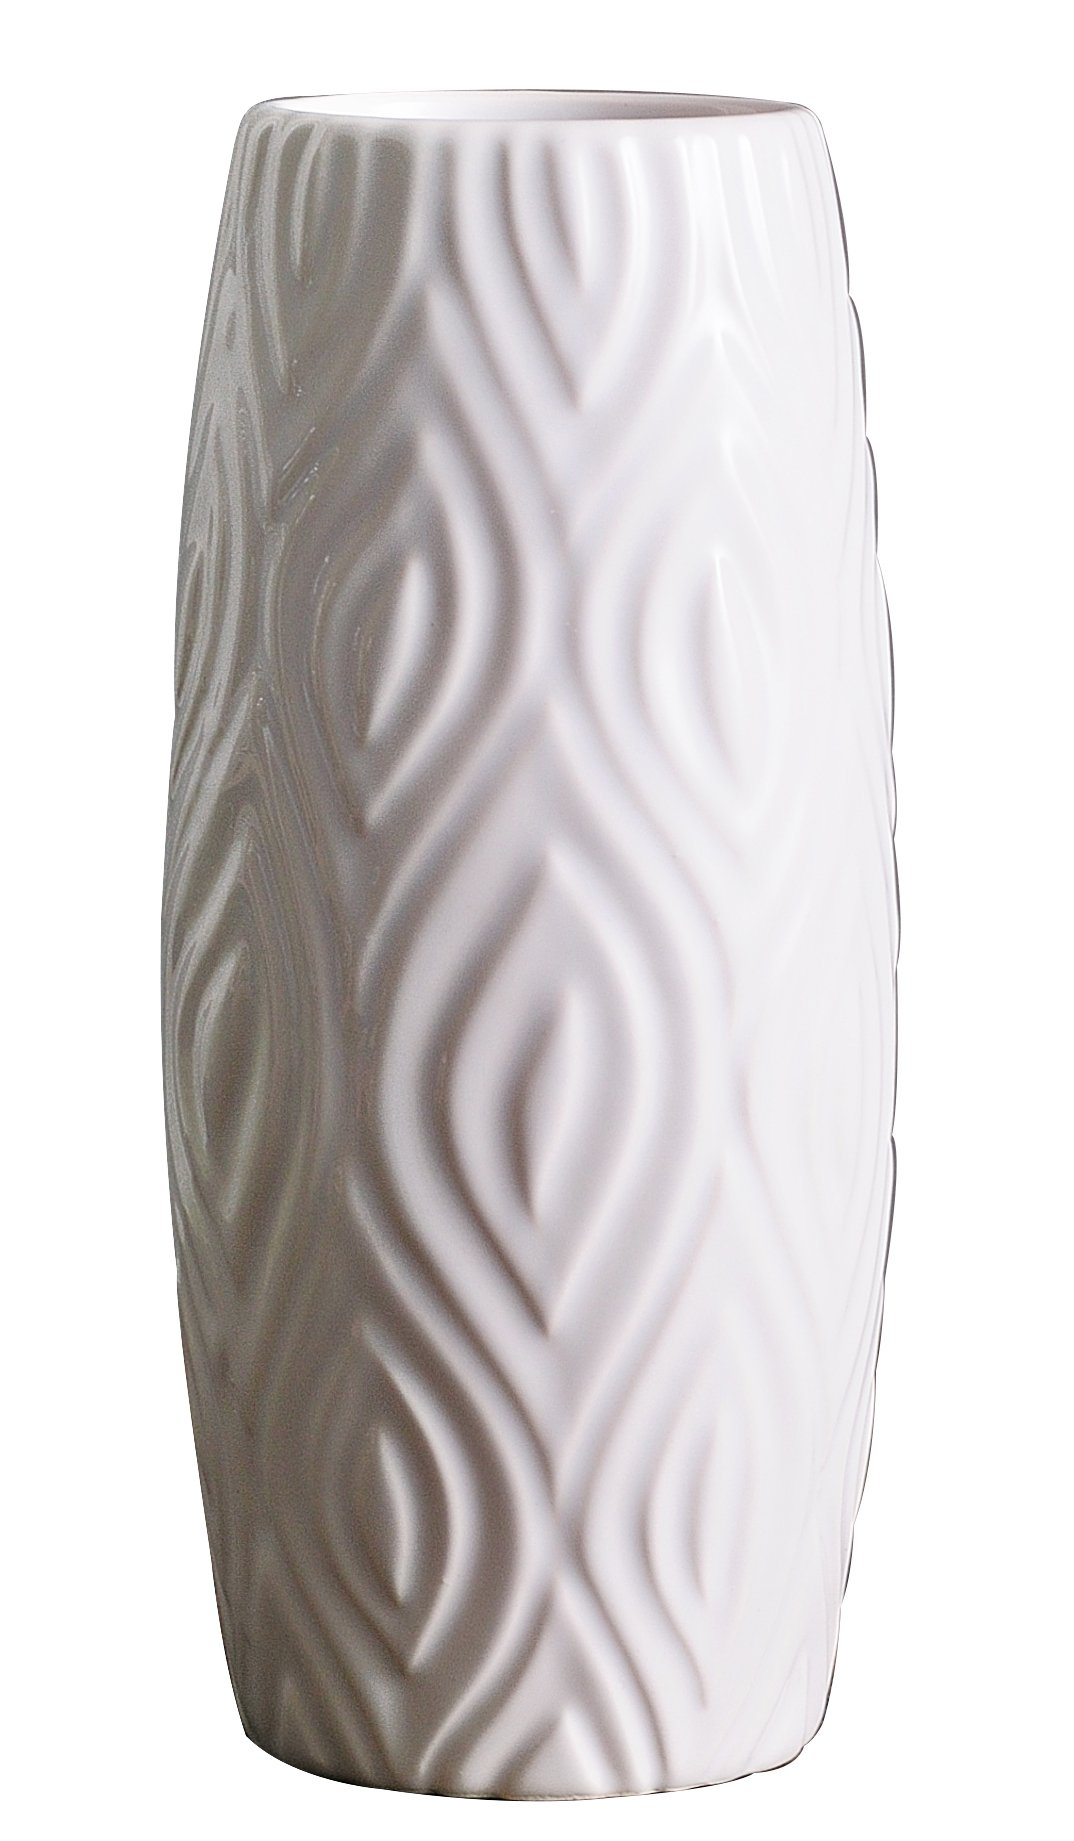 Jusalpha 8.7'' High White Ceramic Vase. Ideal Gift for Weddings, Party, Home Decor, Spa #02